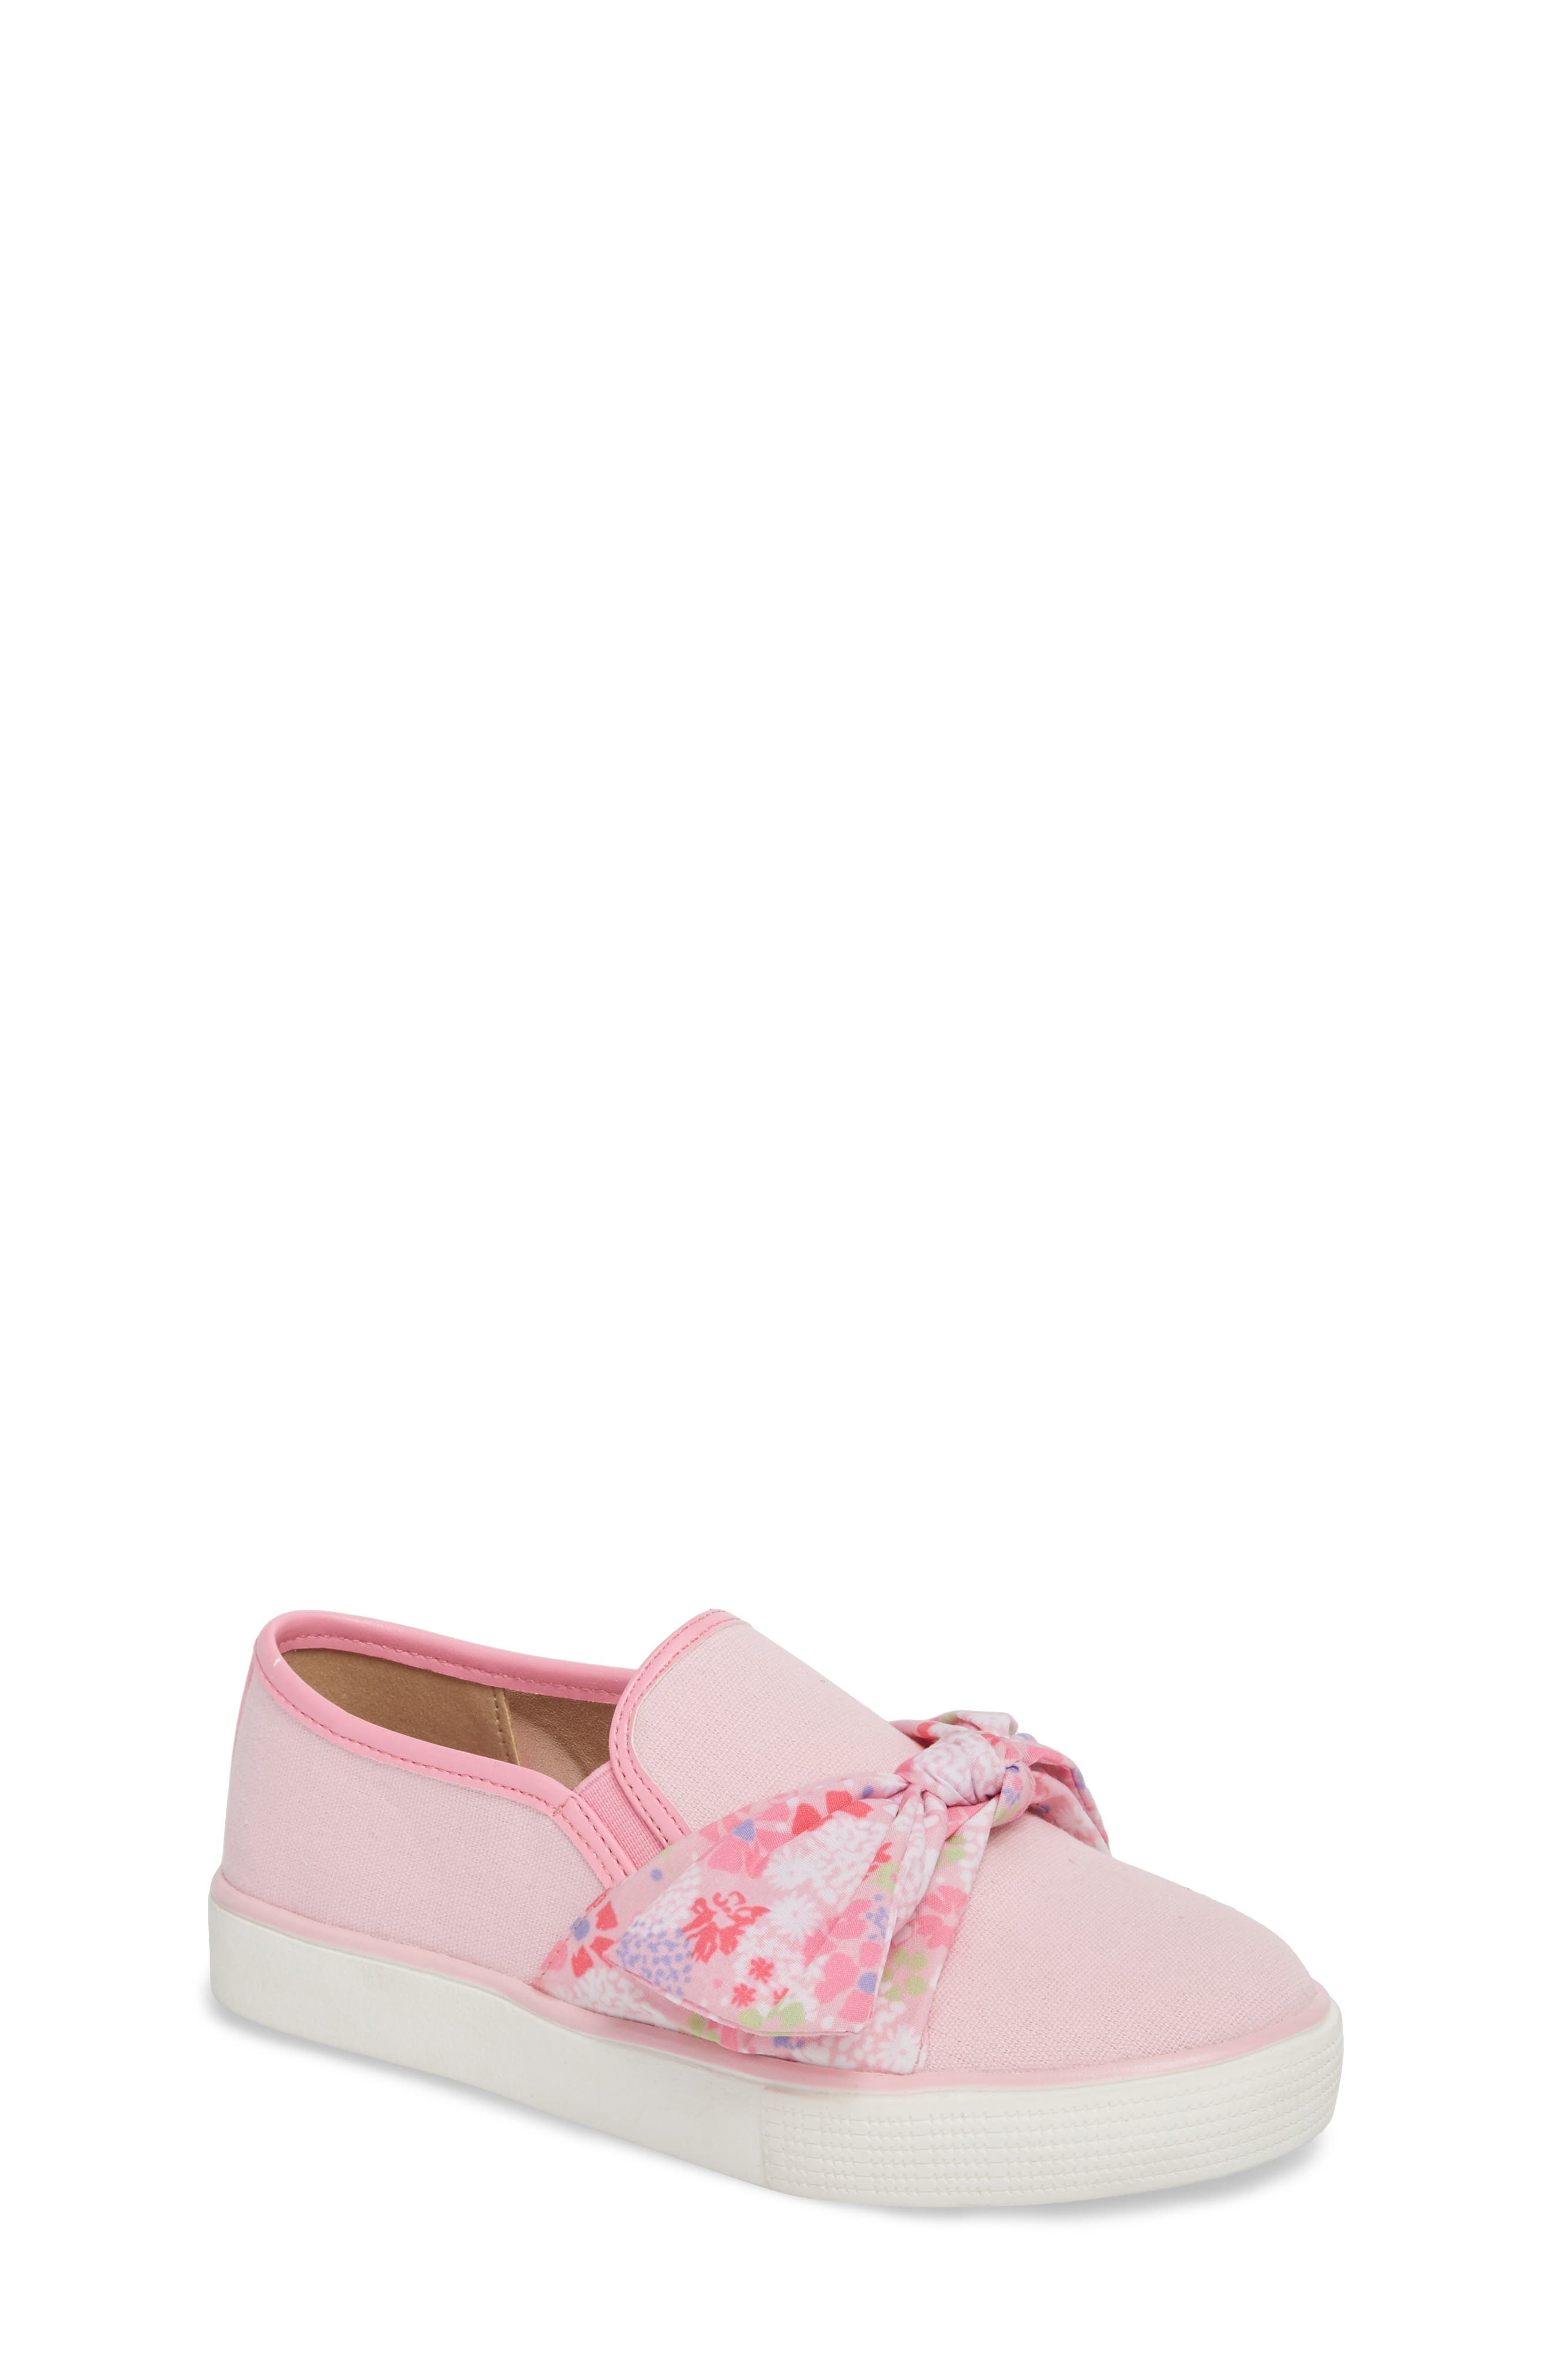 Ashlyn Bow Slip-On Sneaker,                         Main,                         color, Orchid Pink